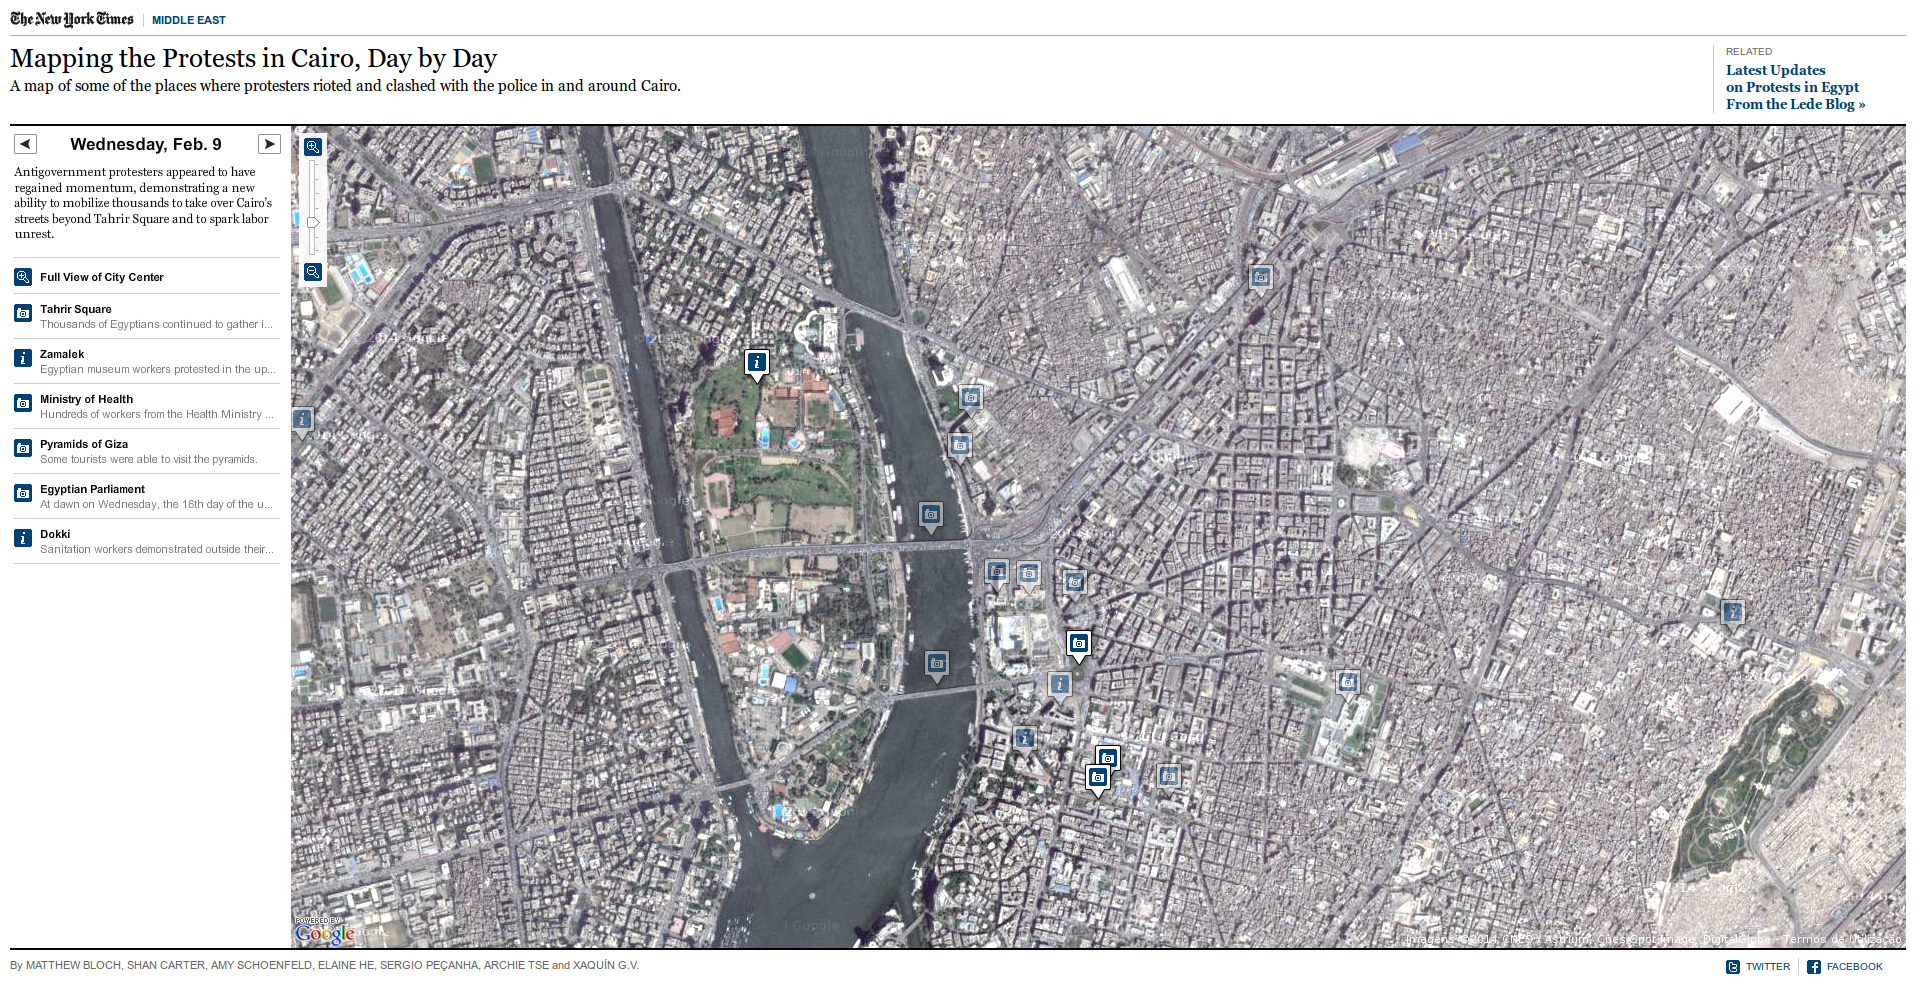 Mapping the Protests in Cairo, Day by Day